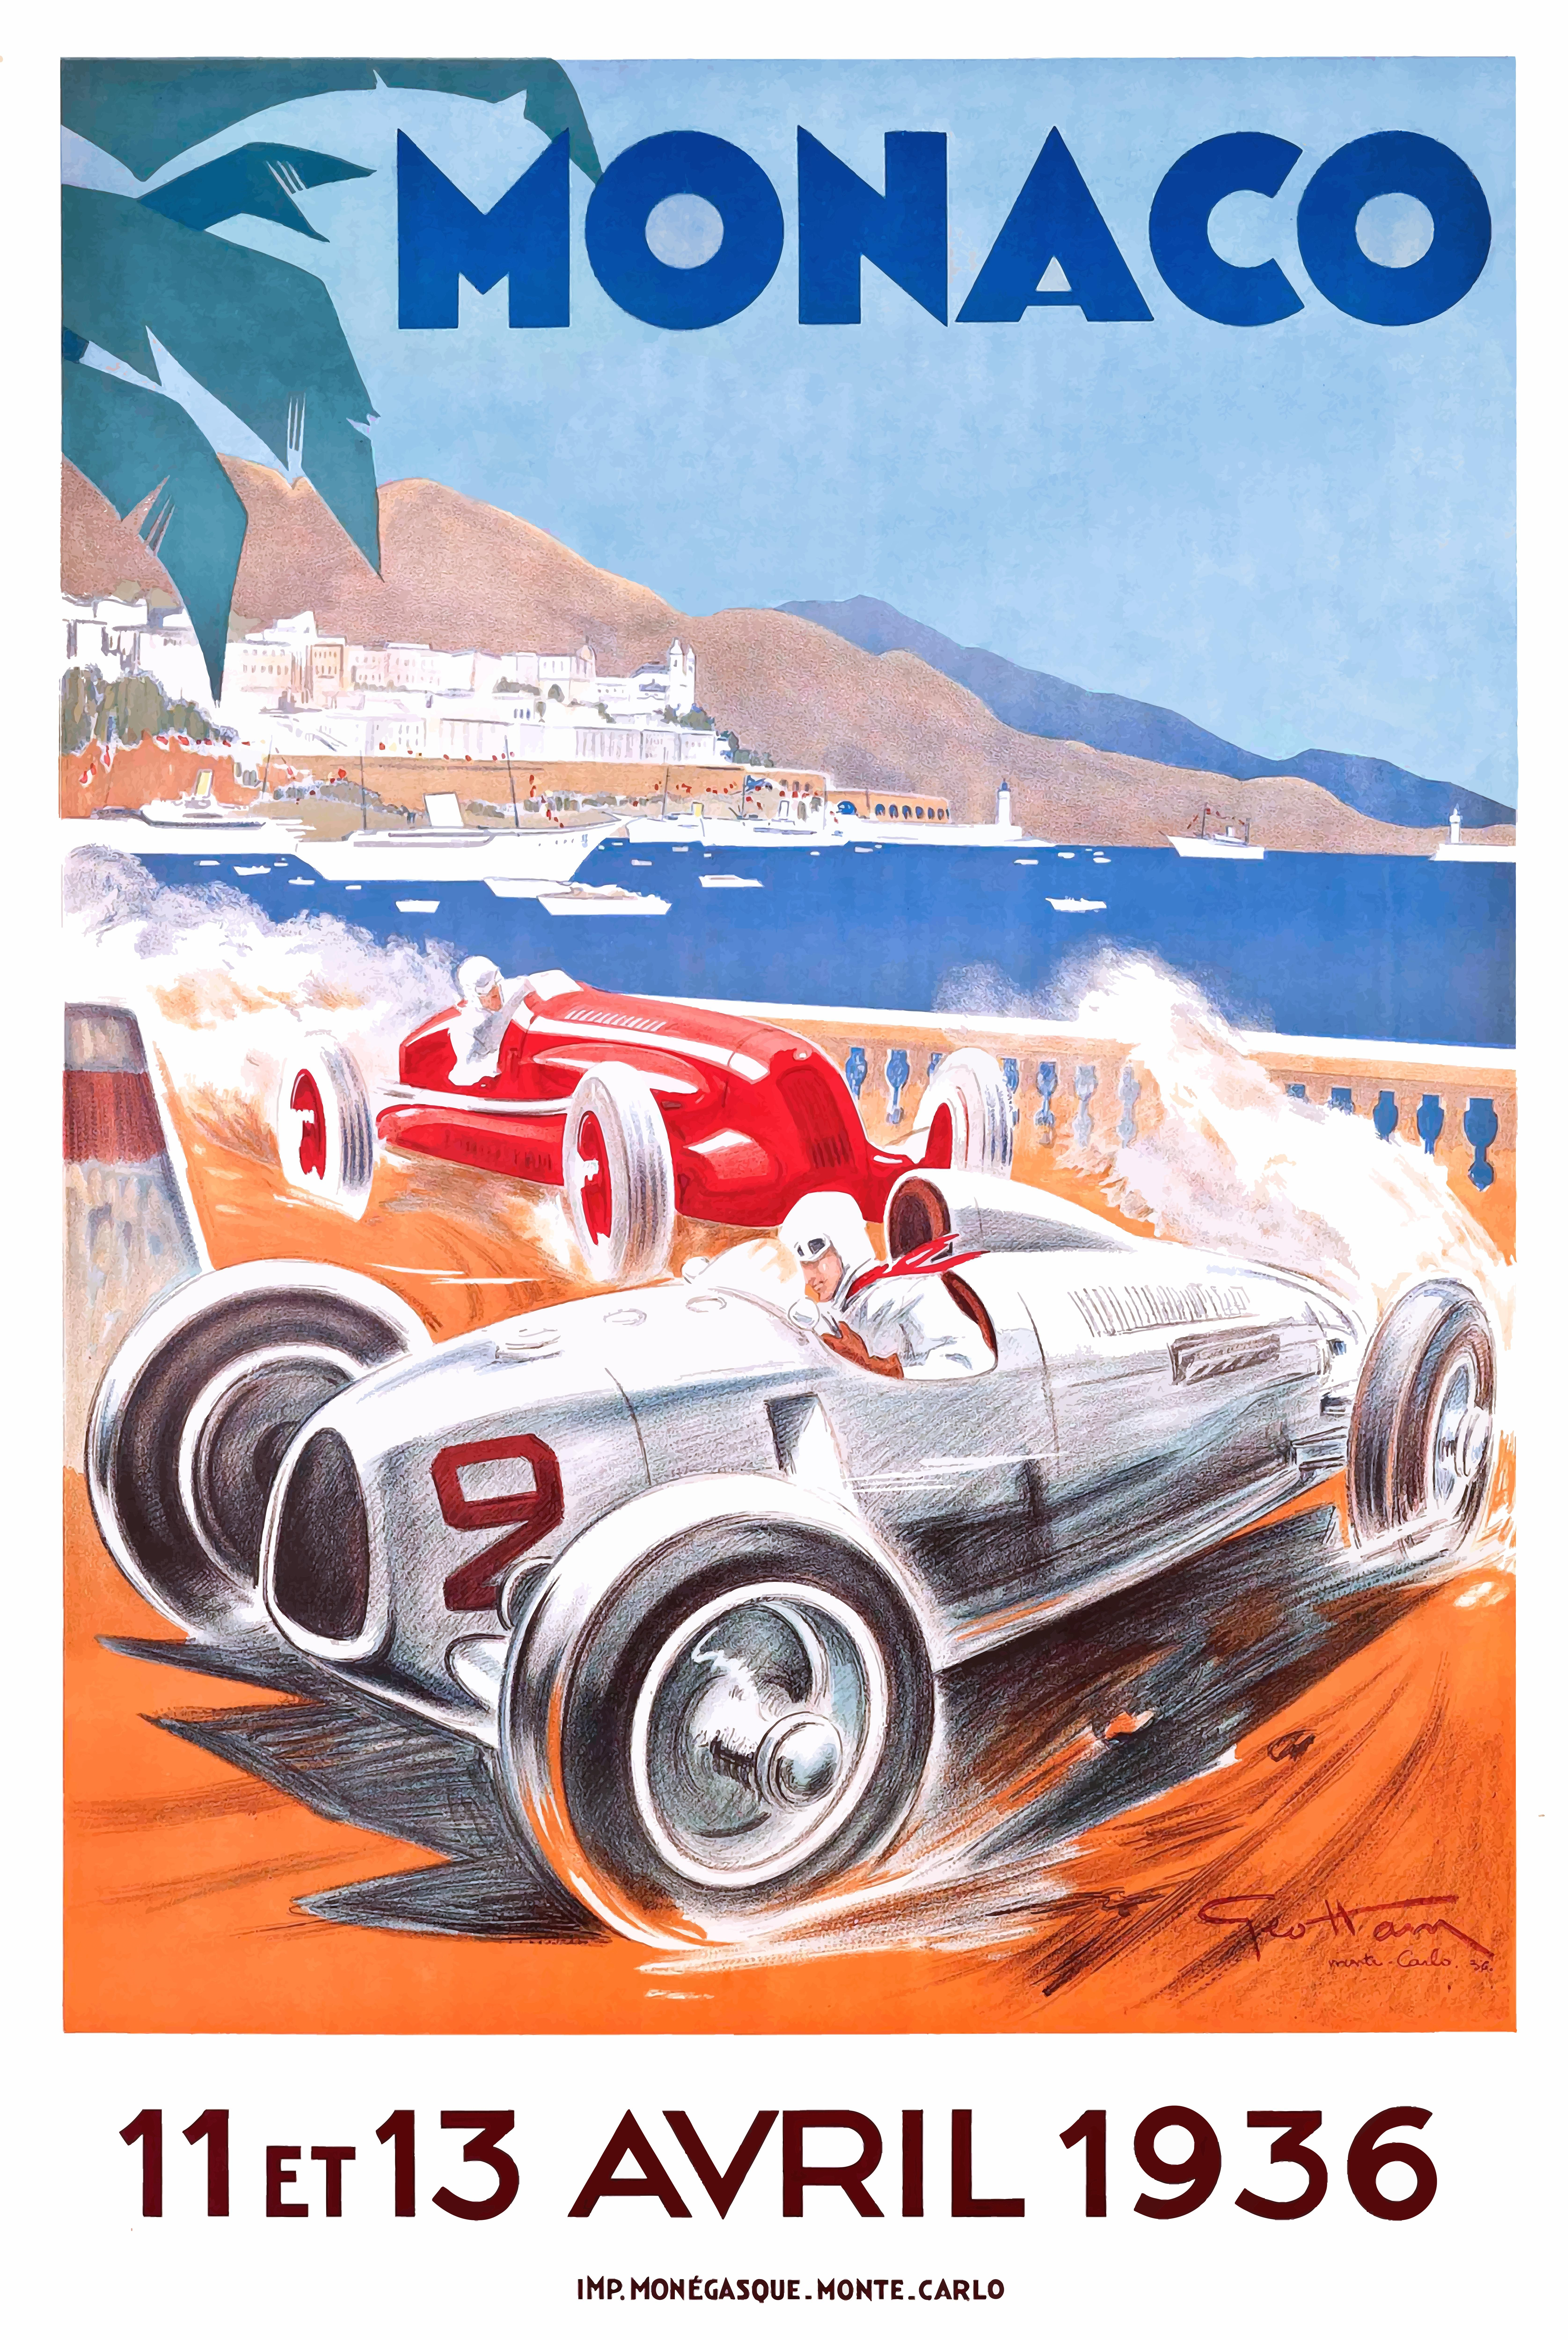 Vintage Old Transport Poster Cooper Cycles 3 Print Art A4 A3 A2 A1